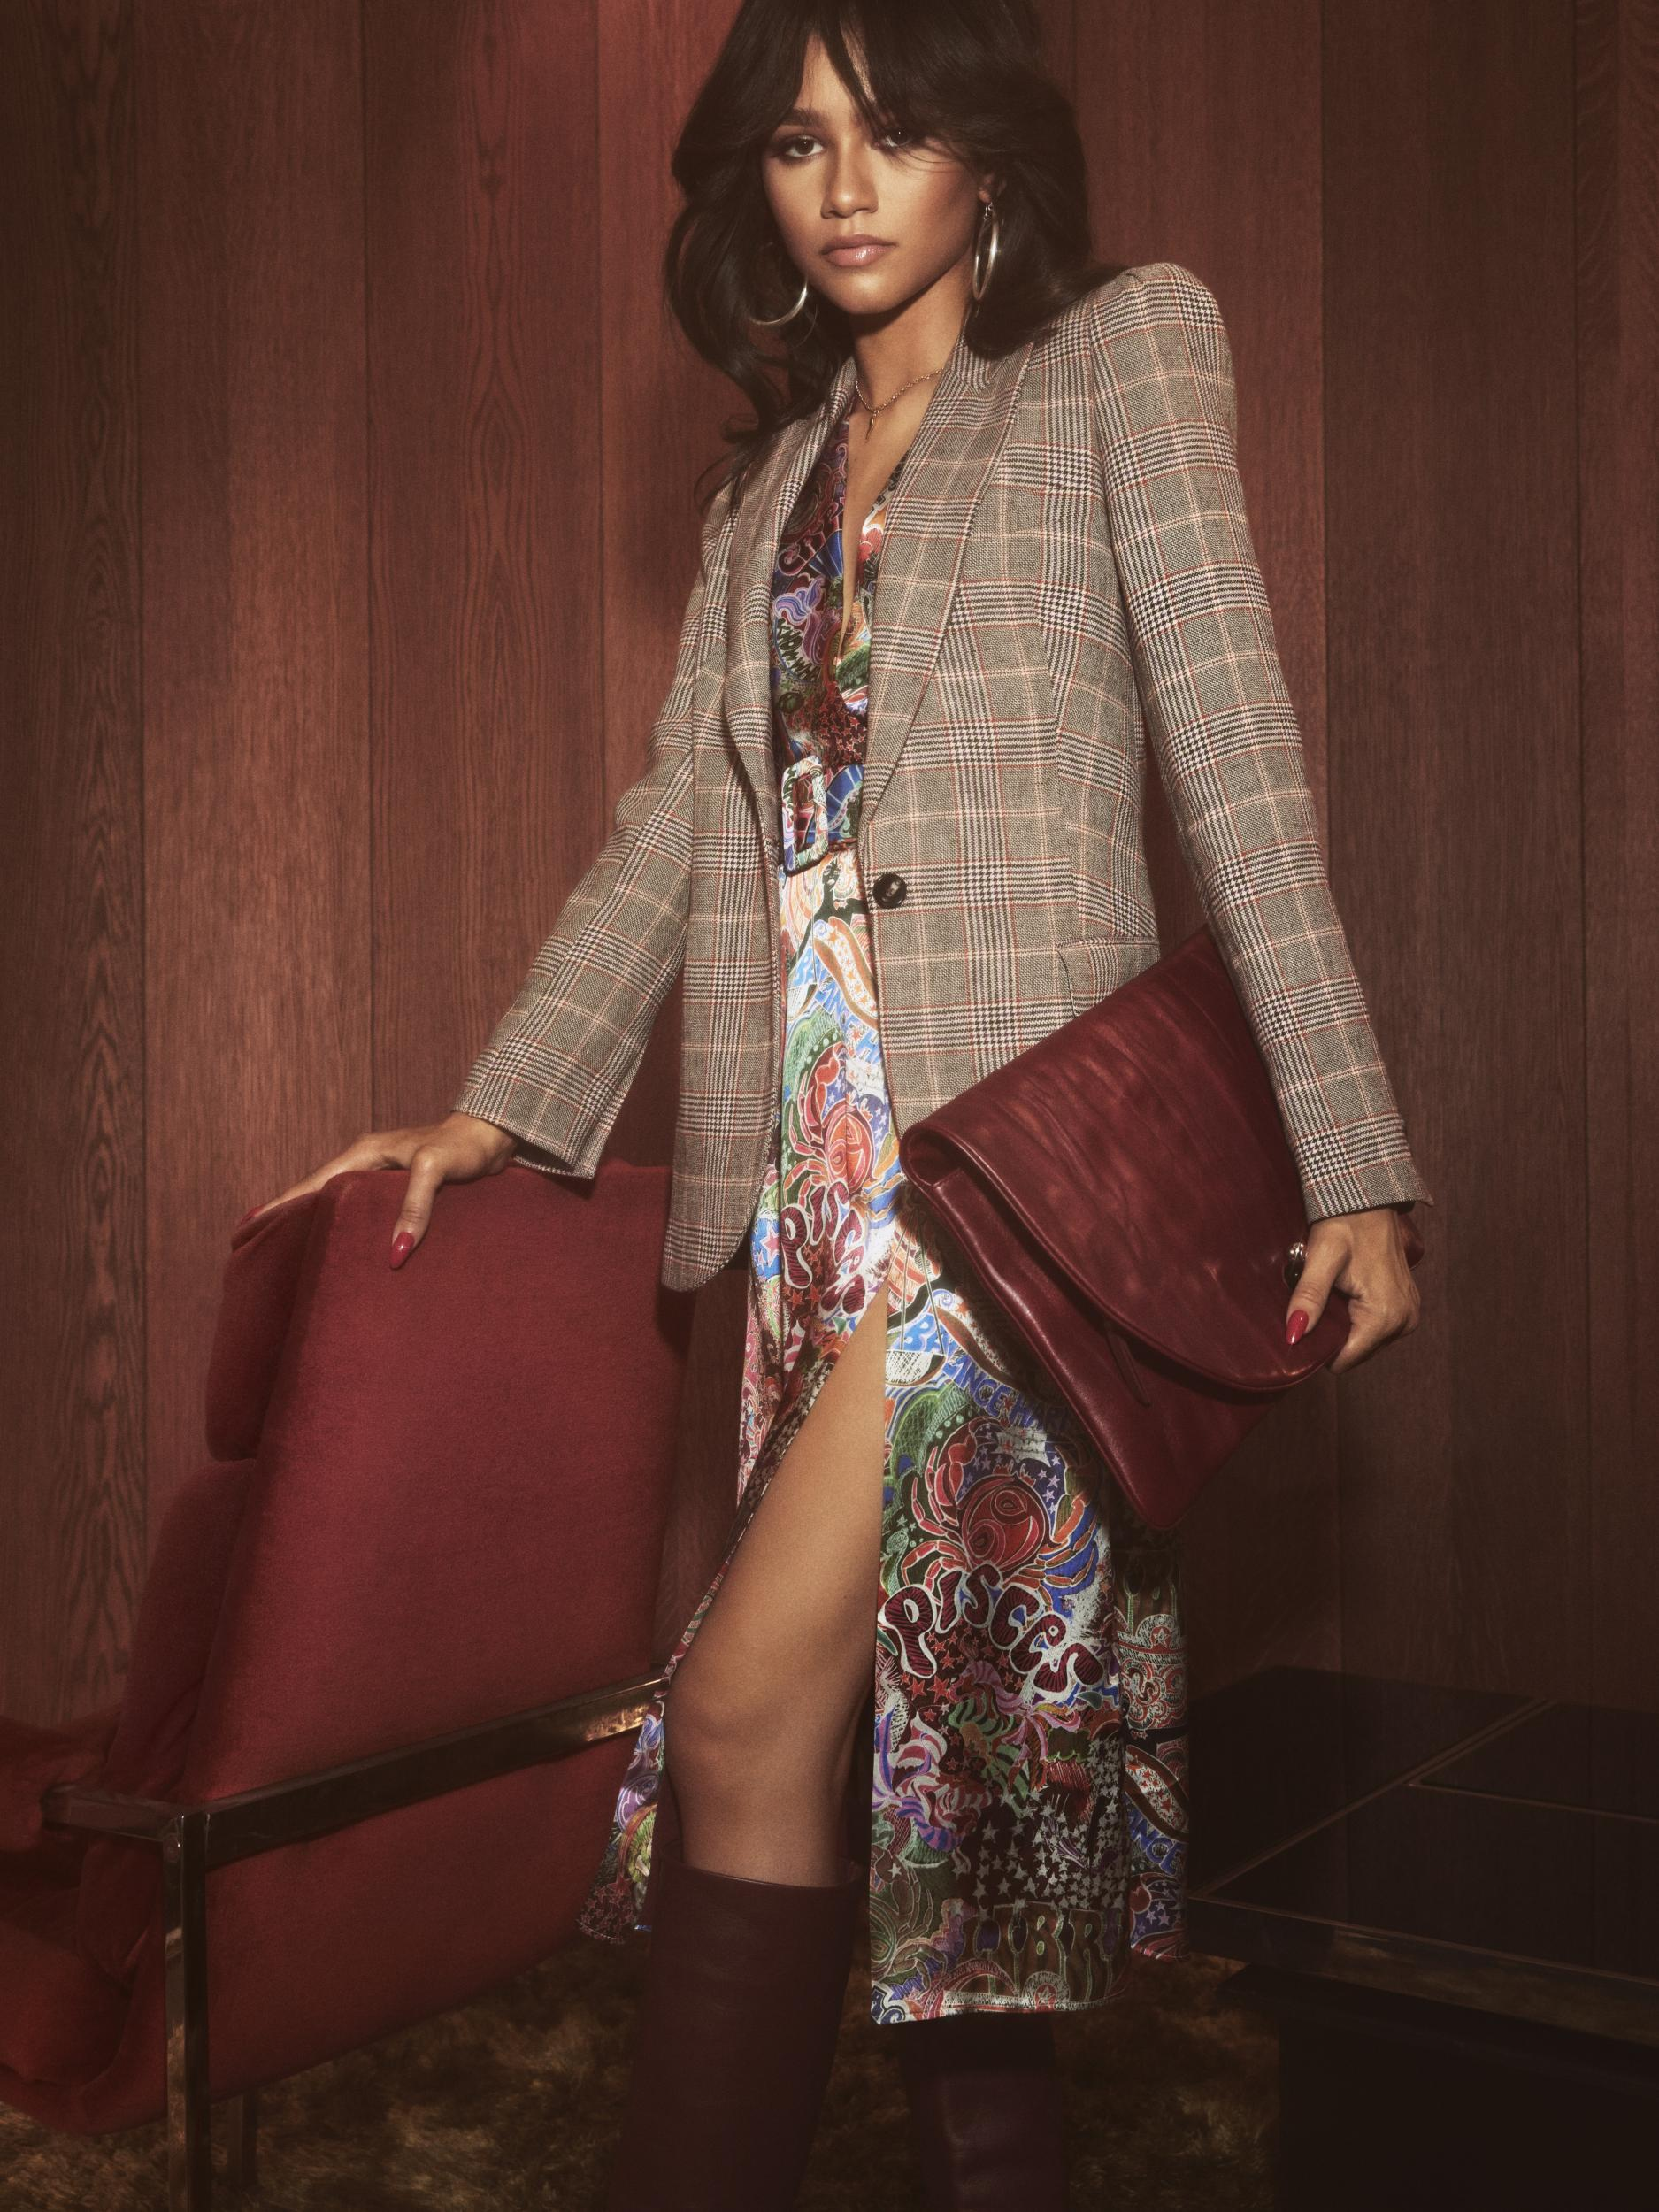 230d90e7b Tommy Hilfiger x Zendaya: First look at collection ahead of Paris ...